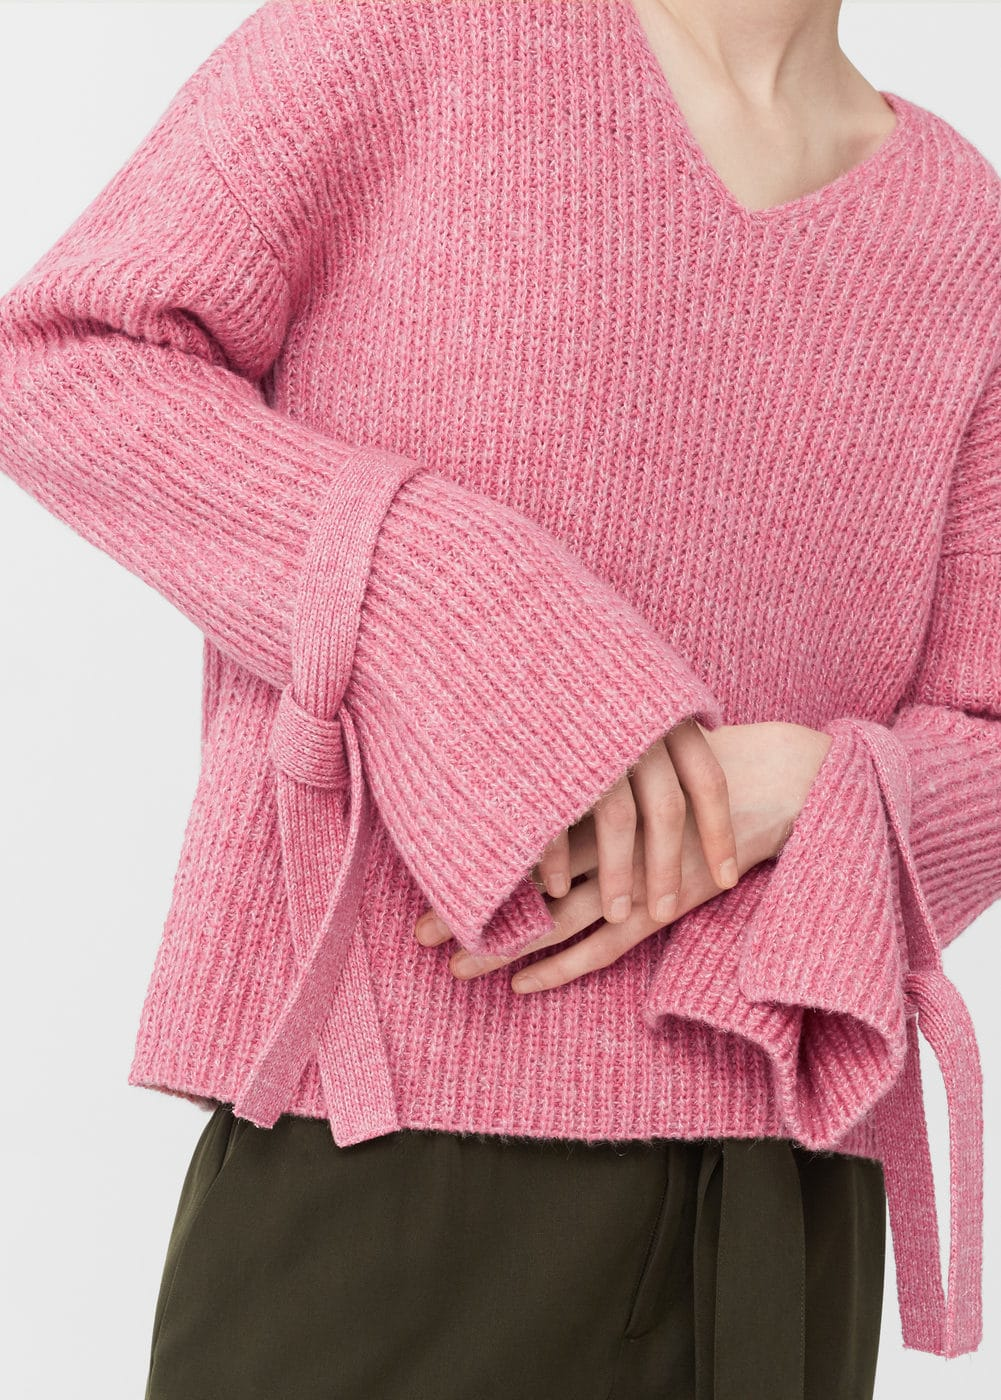 Statement Sleeve Pink.jpg